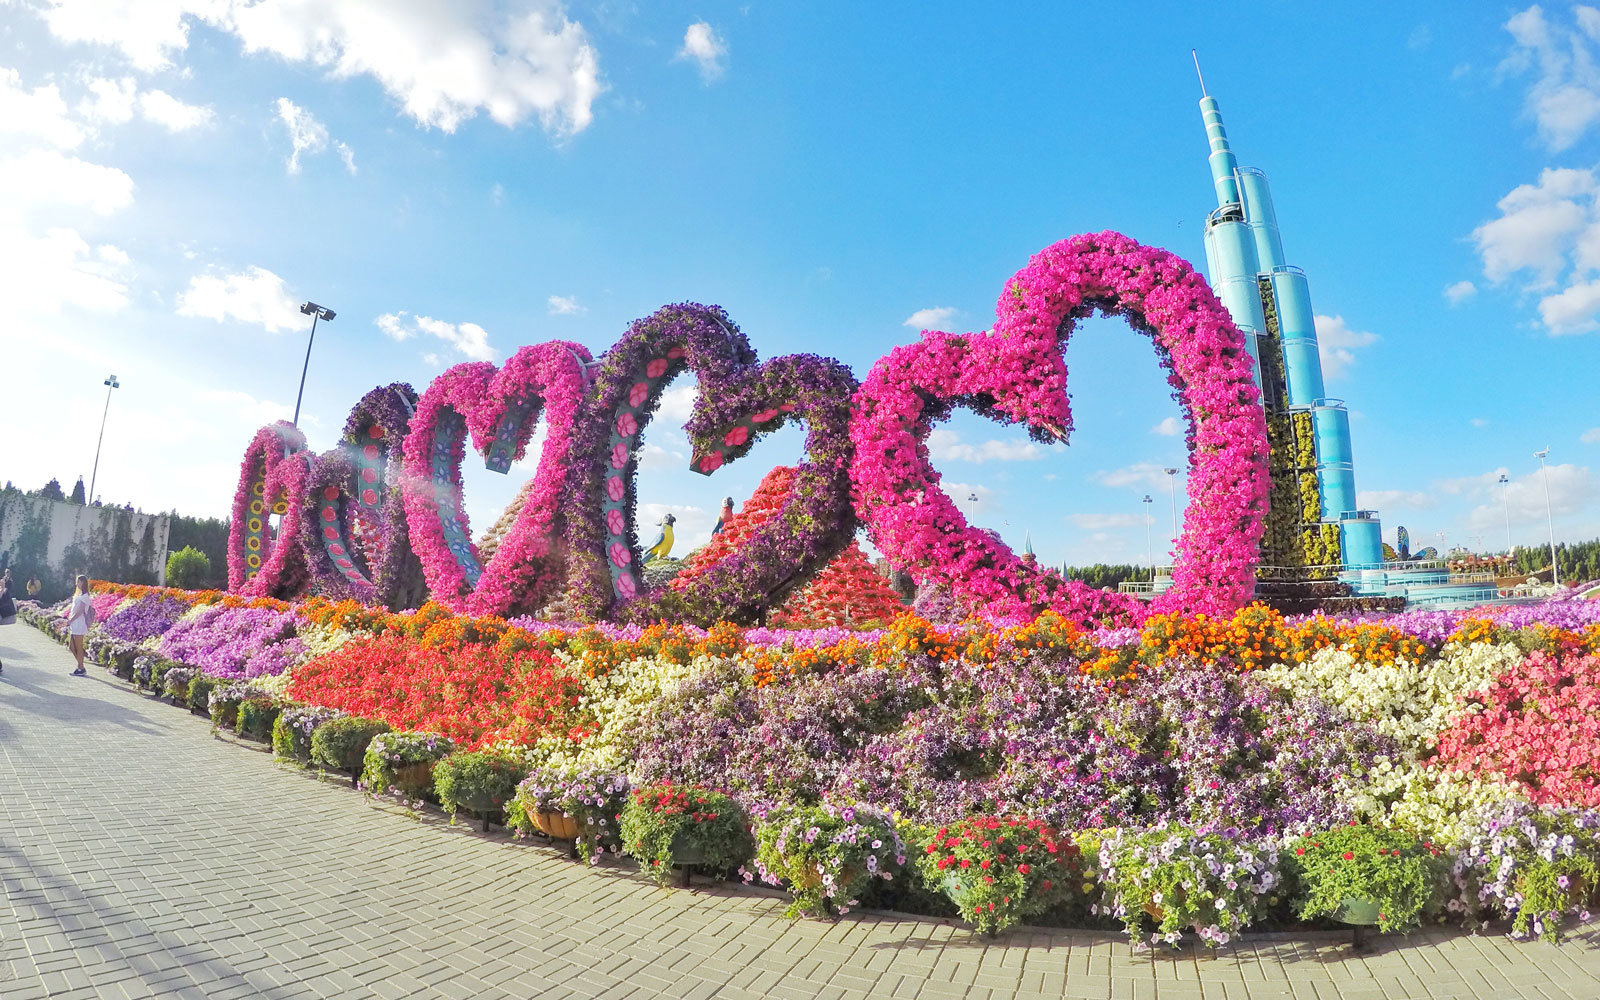 The World's Biggest Flower Garden Sits in the Middle of a ... - photo#10